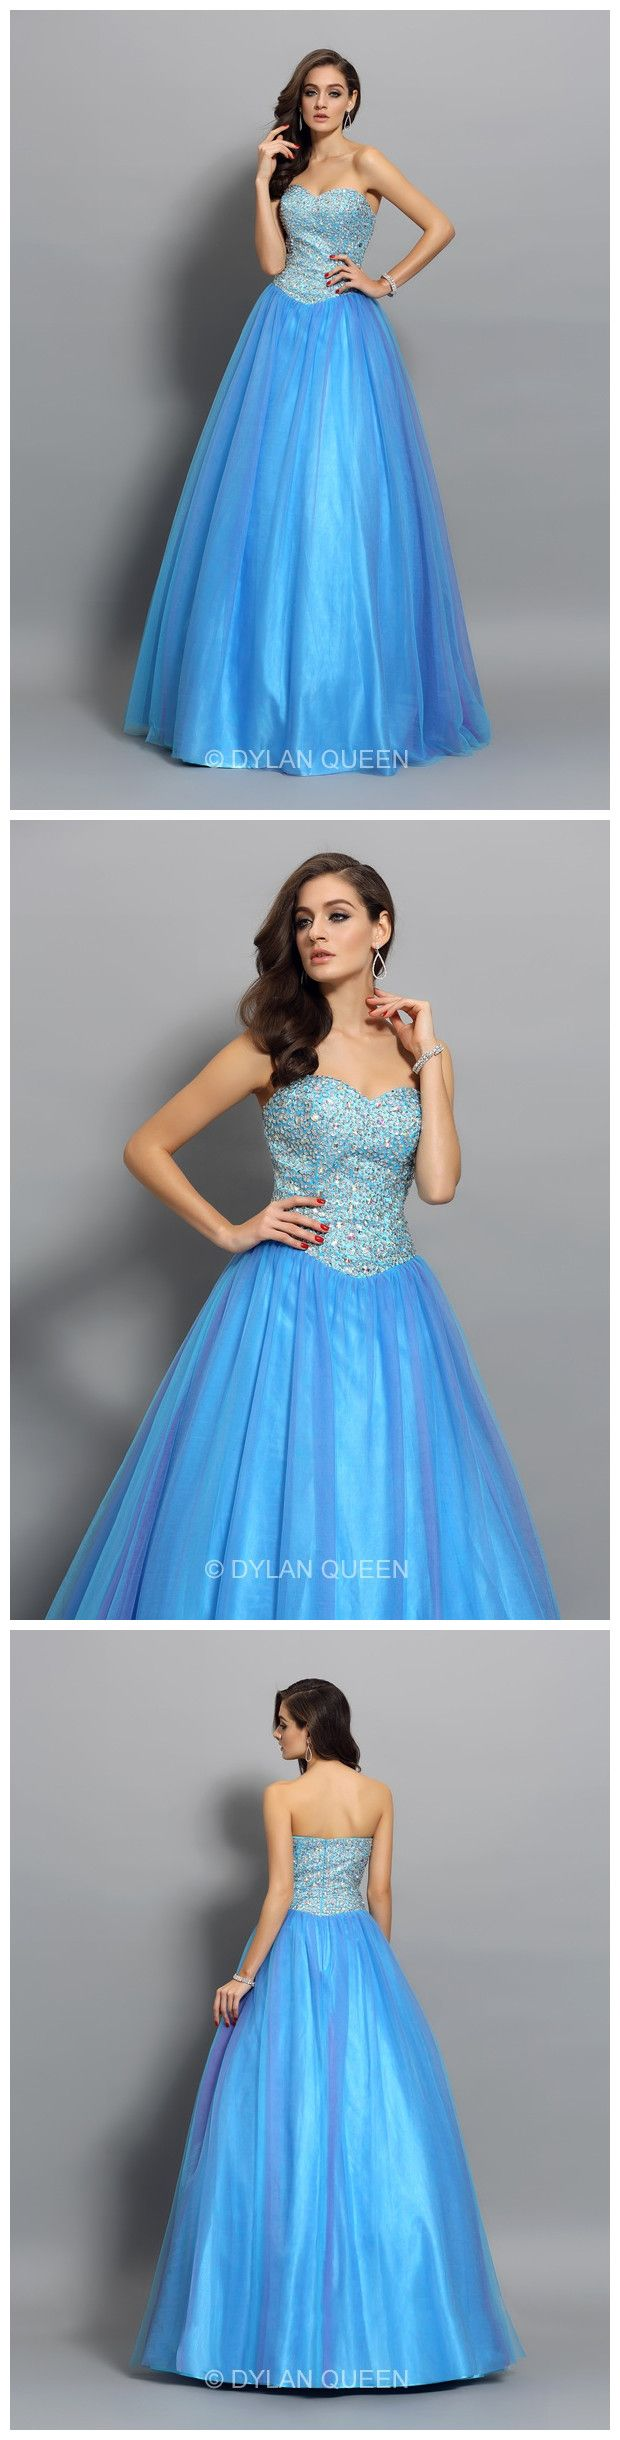 prom dresses @dylanquenn